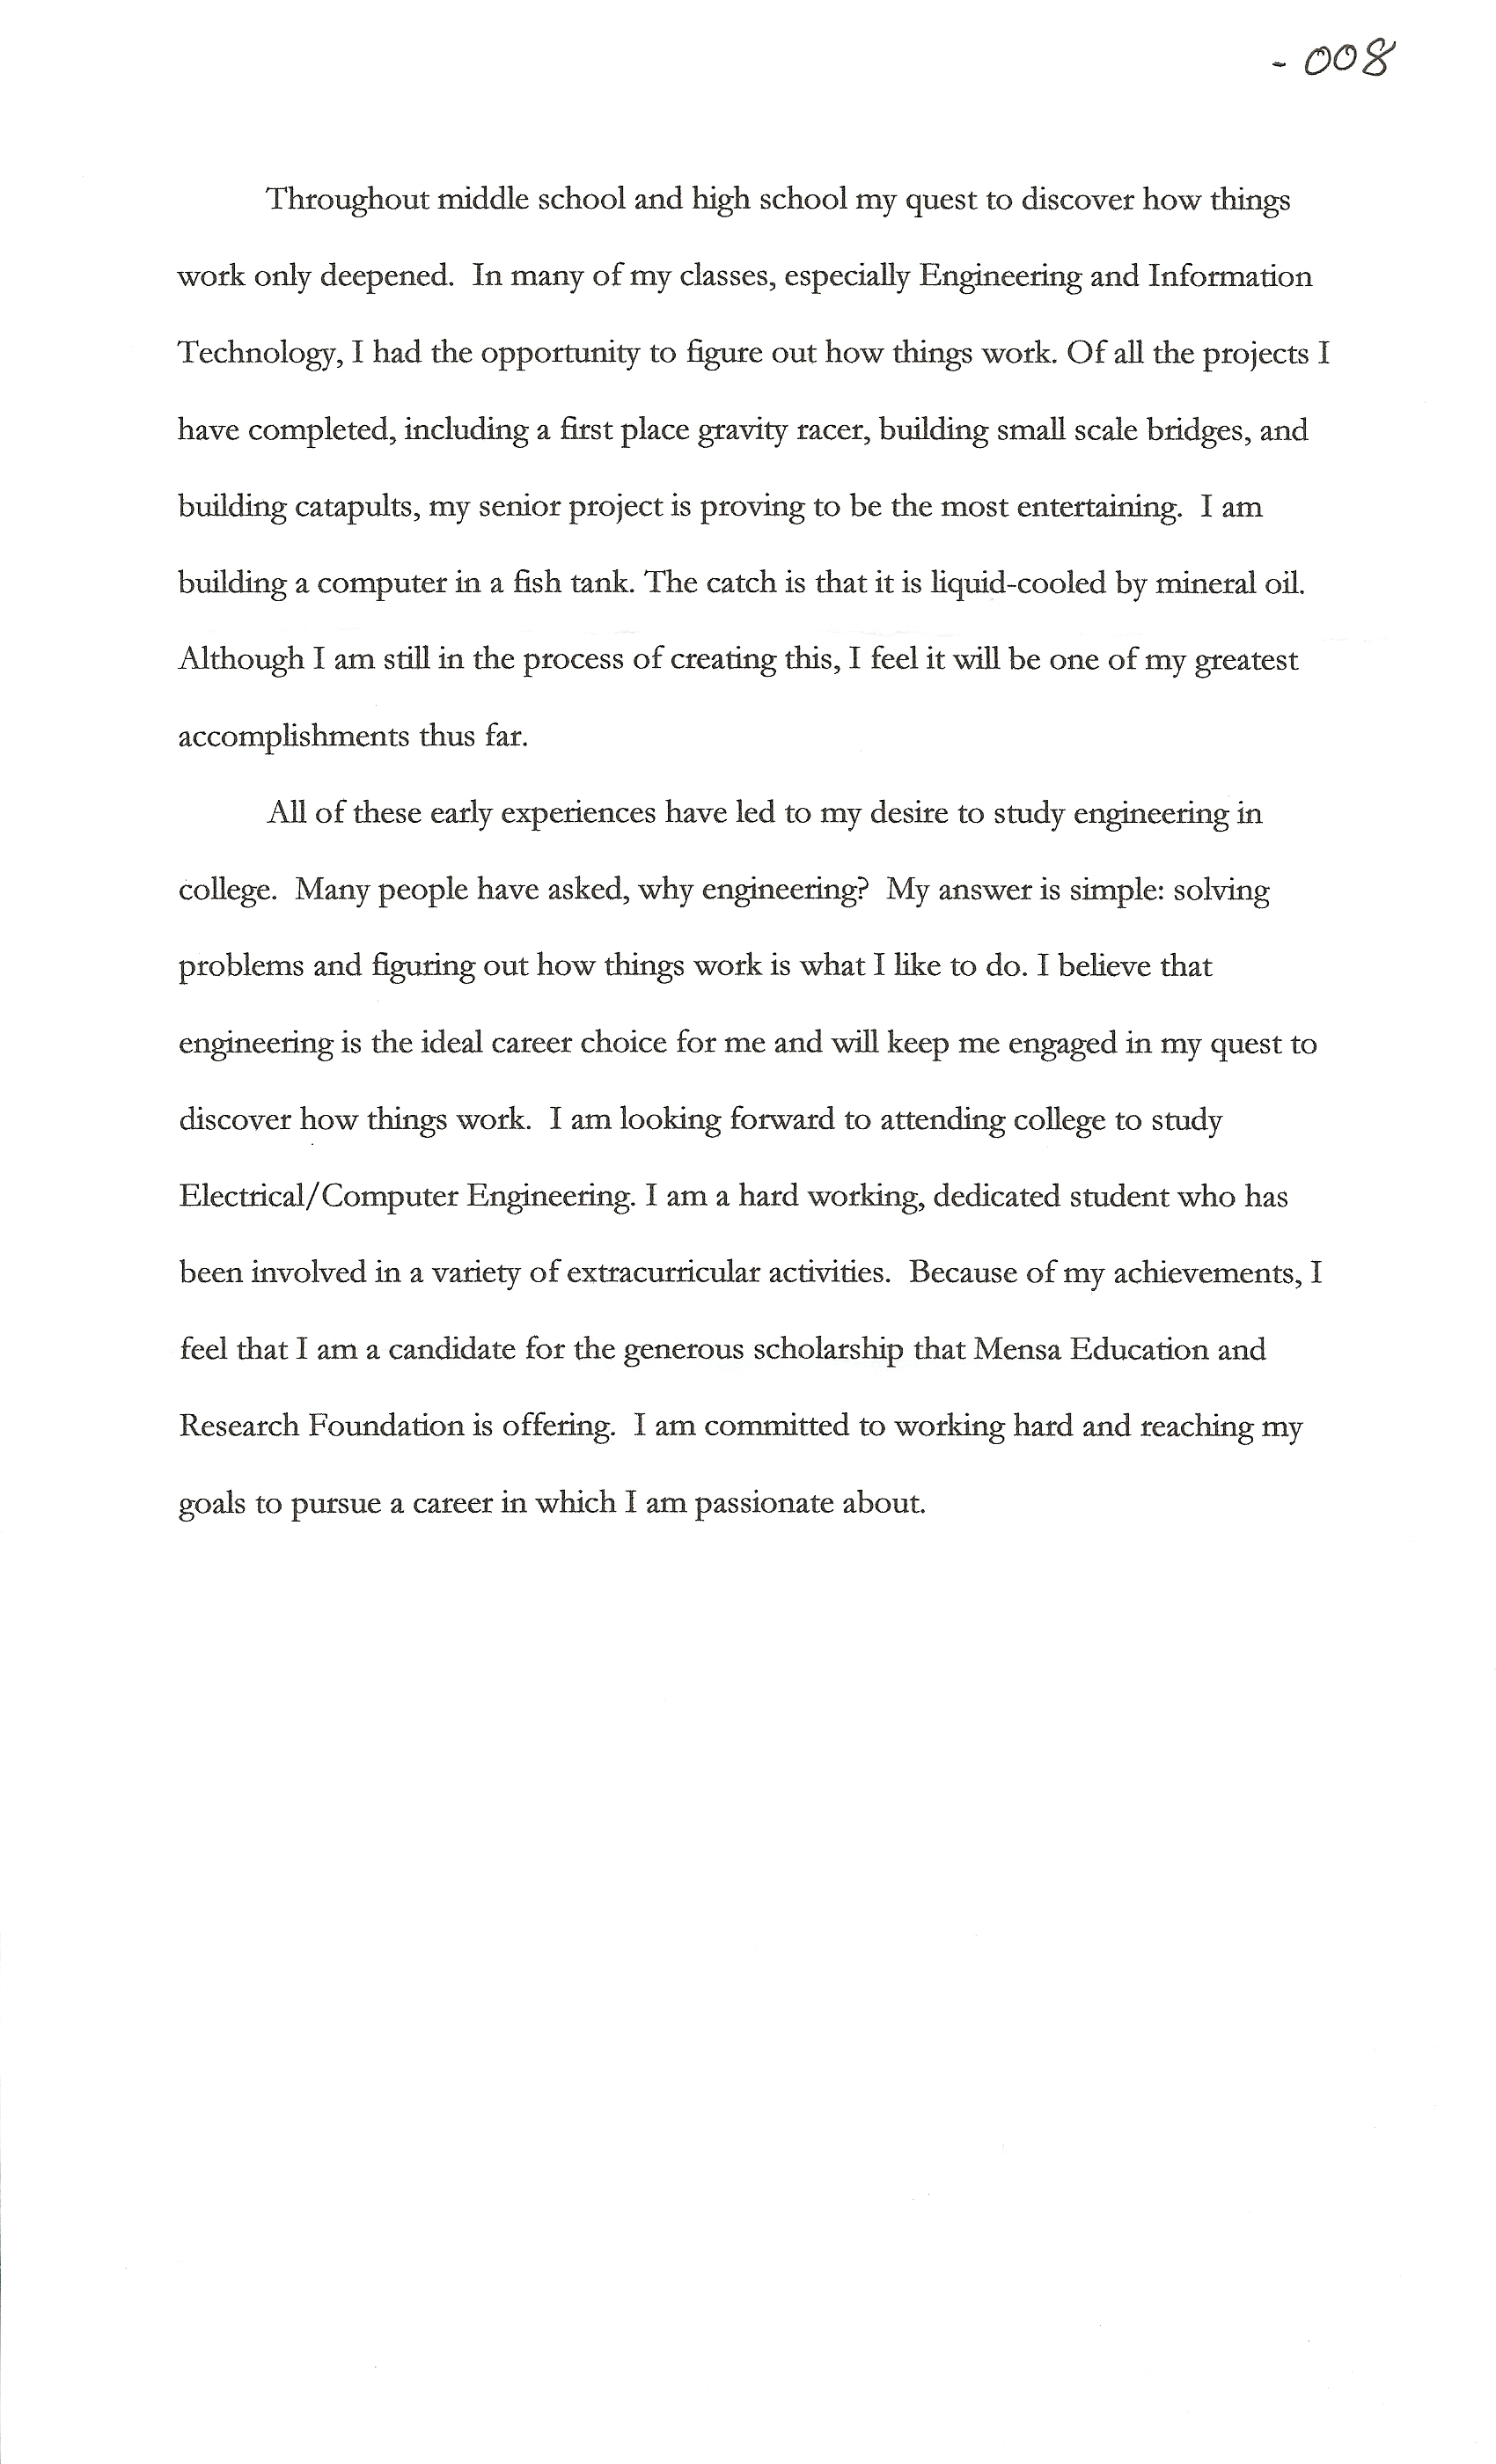 015 Career Essay Joshua Cate Amazing Research Rubric Example Goals Sample Full